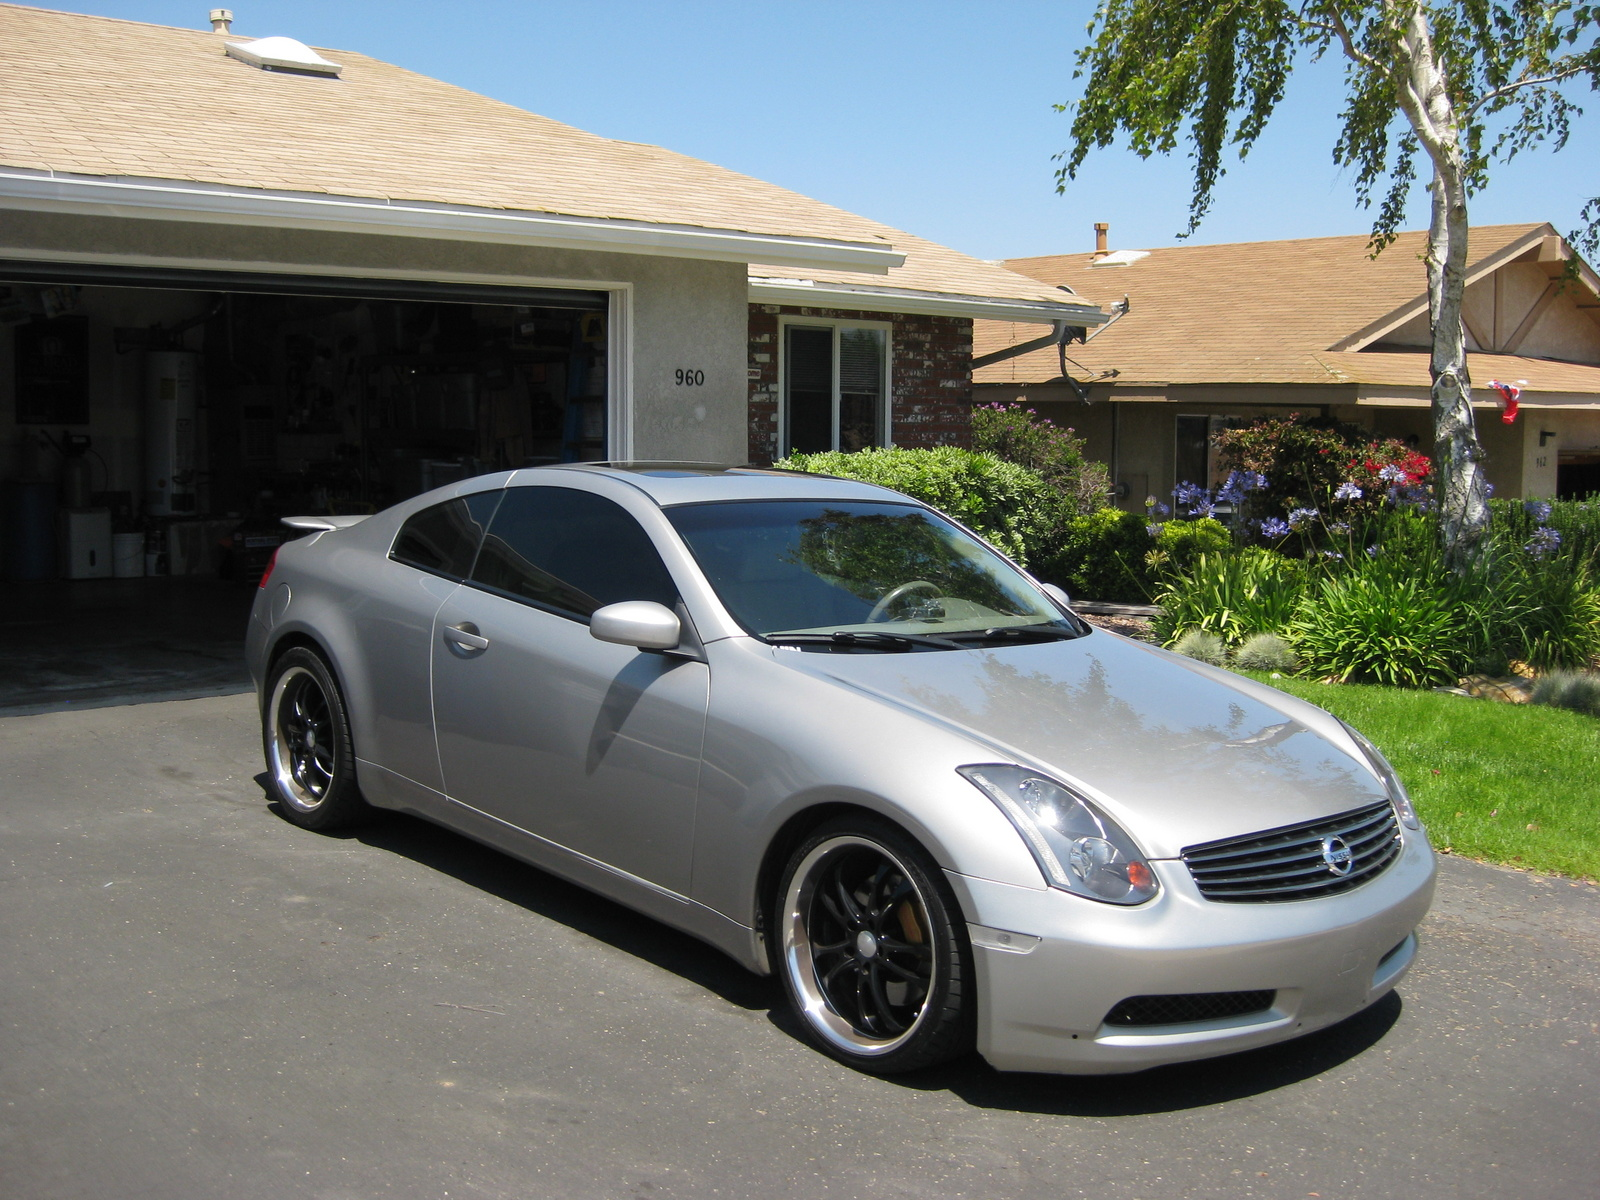 2004 infiniti g35 information and photos momentcar. Black Bedroom Furniture Sets. Home Design Ideas